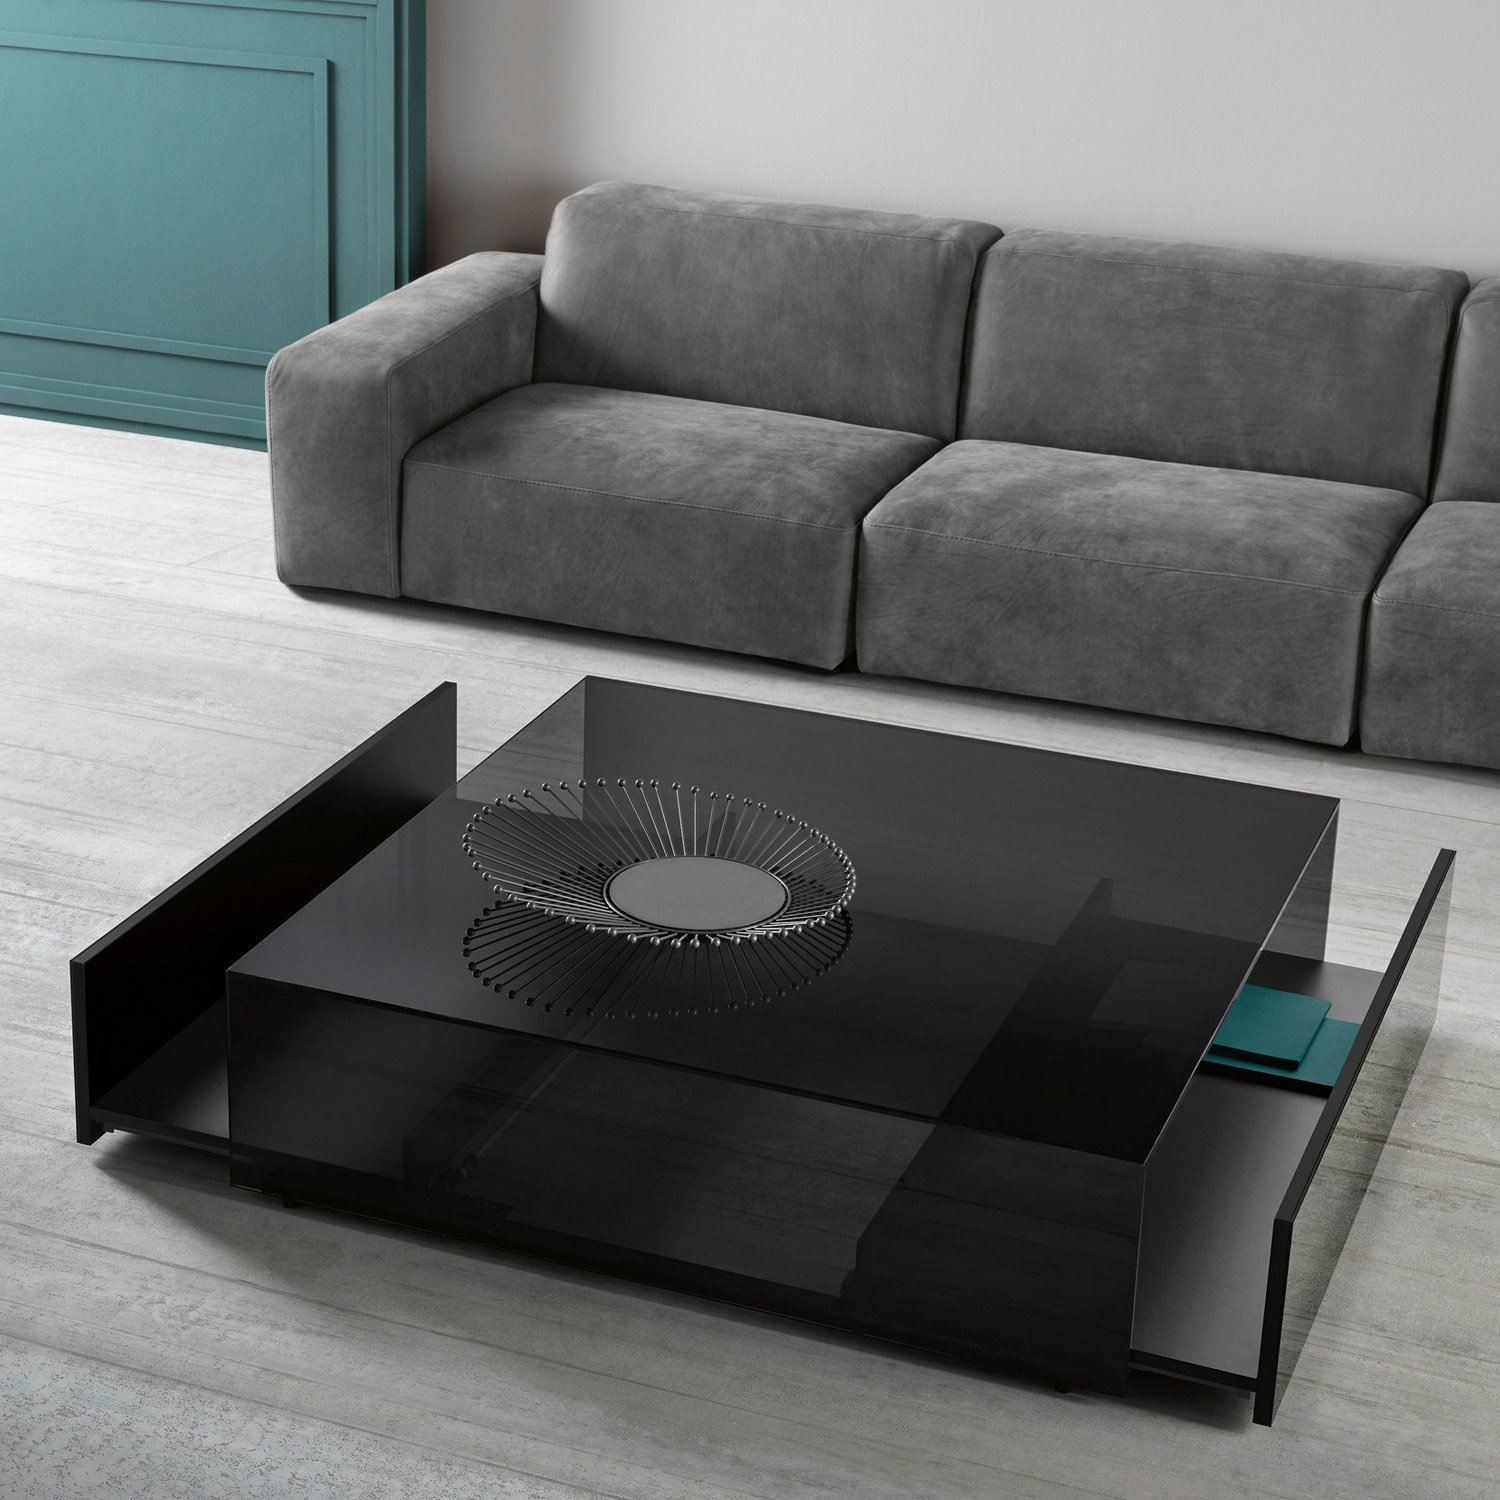 Ghotam Square Smoked Glass Coffee Table With 2 Drawers